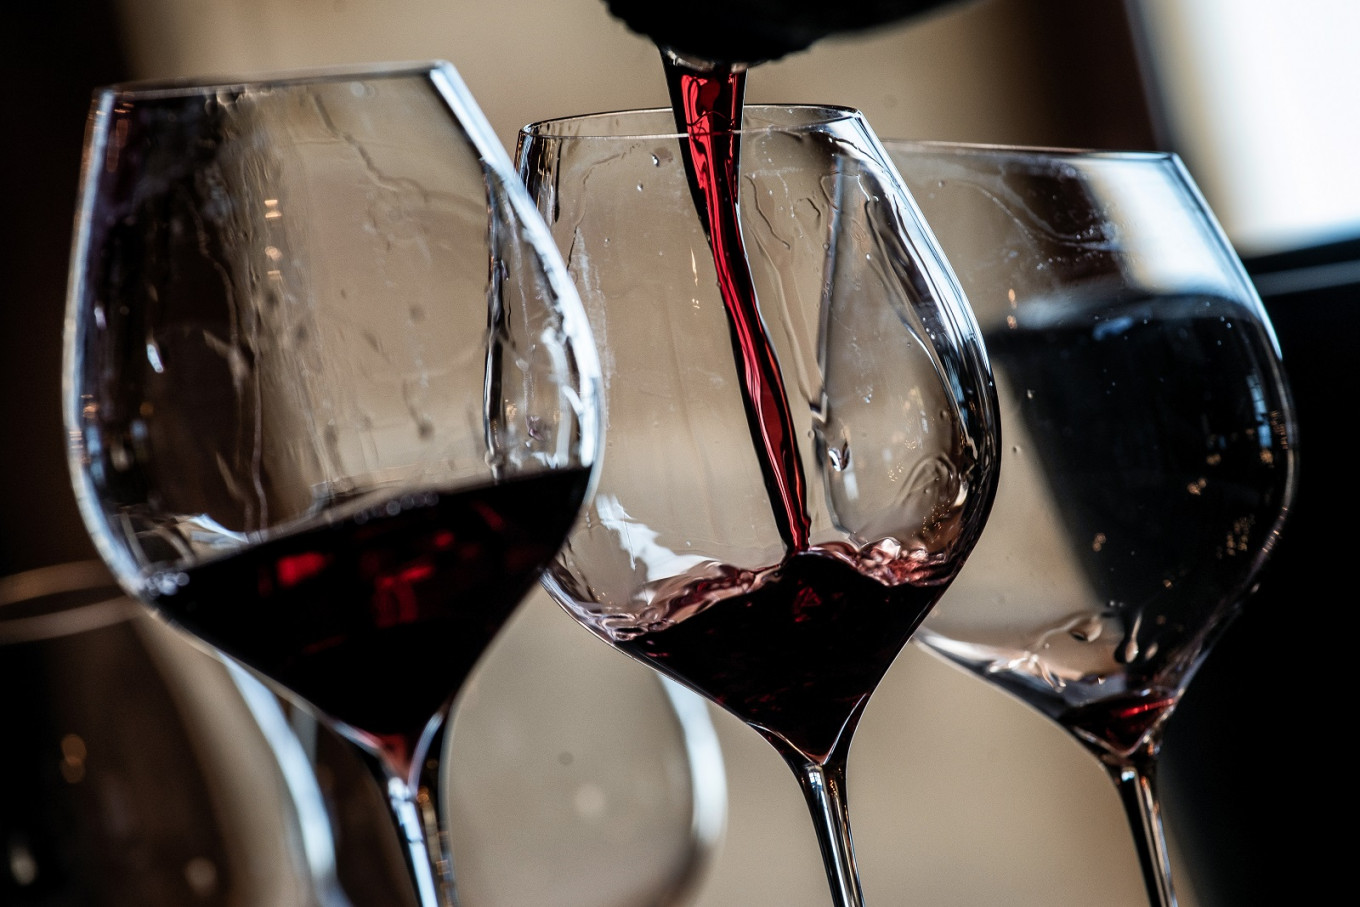 France to transform surplus wine into hand sanitizer